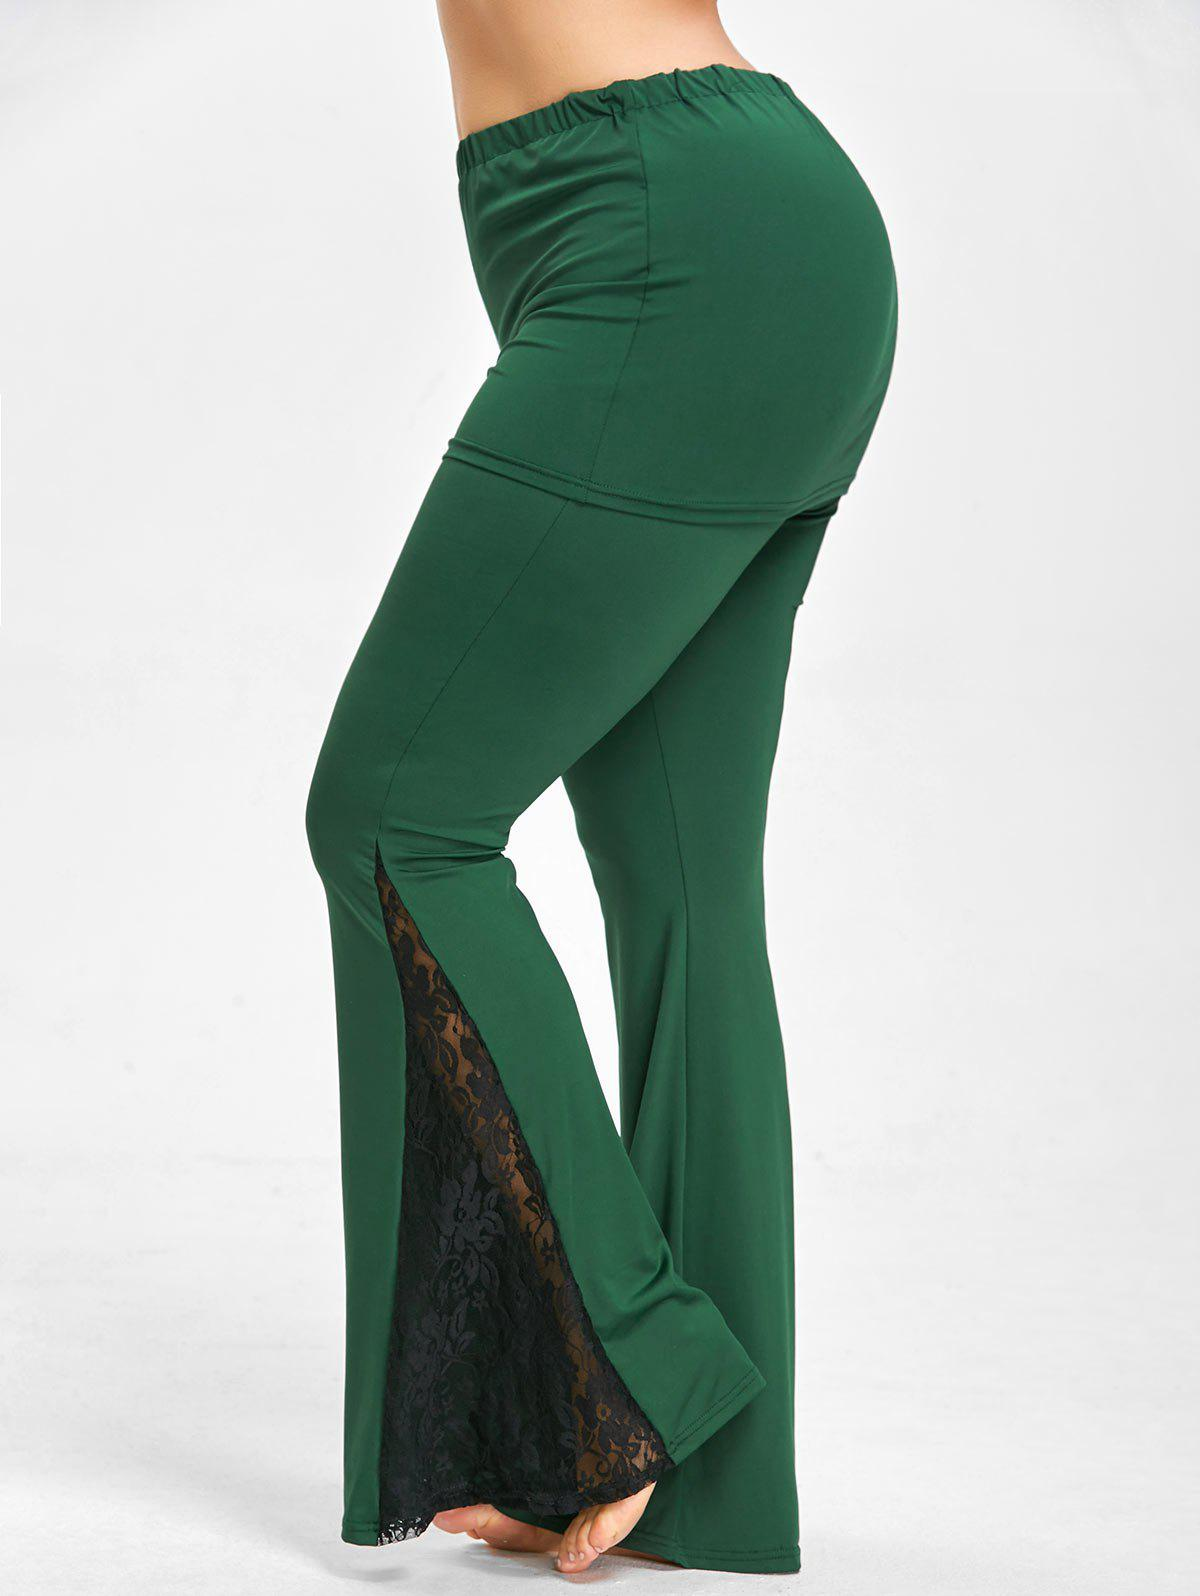 Lace Trim Plus Size Flare PantsWOMEN<br><br>Size: 4XL; Color: BLACKISH GREEN; Style: Fashion; Length: Overlength; Material: Polyester,Spandex; Fit Type: Regular; Waist Type: Mid; Closure Type: Drawstring; Pattern Type: Others; Embellishment: Lace; Pant Style: Flare Pants; Weight: 0.4400kg; Package Contents: 1 x Pants;